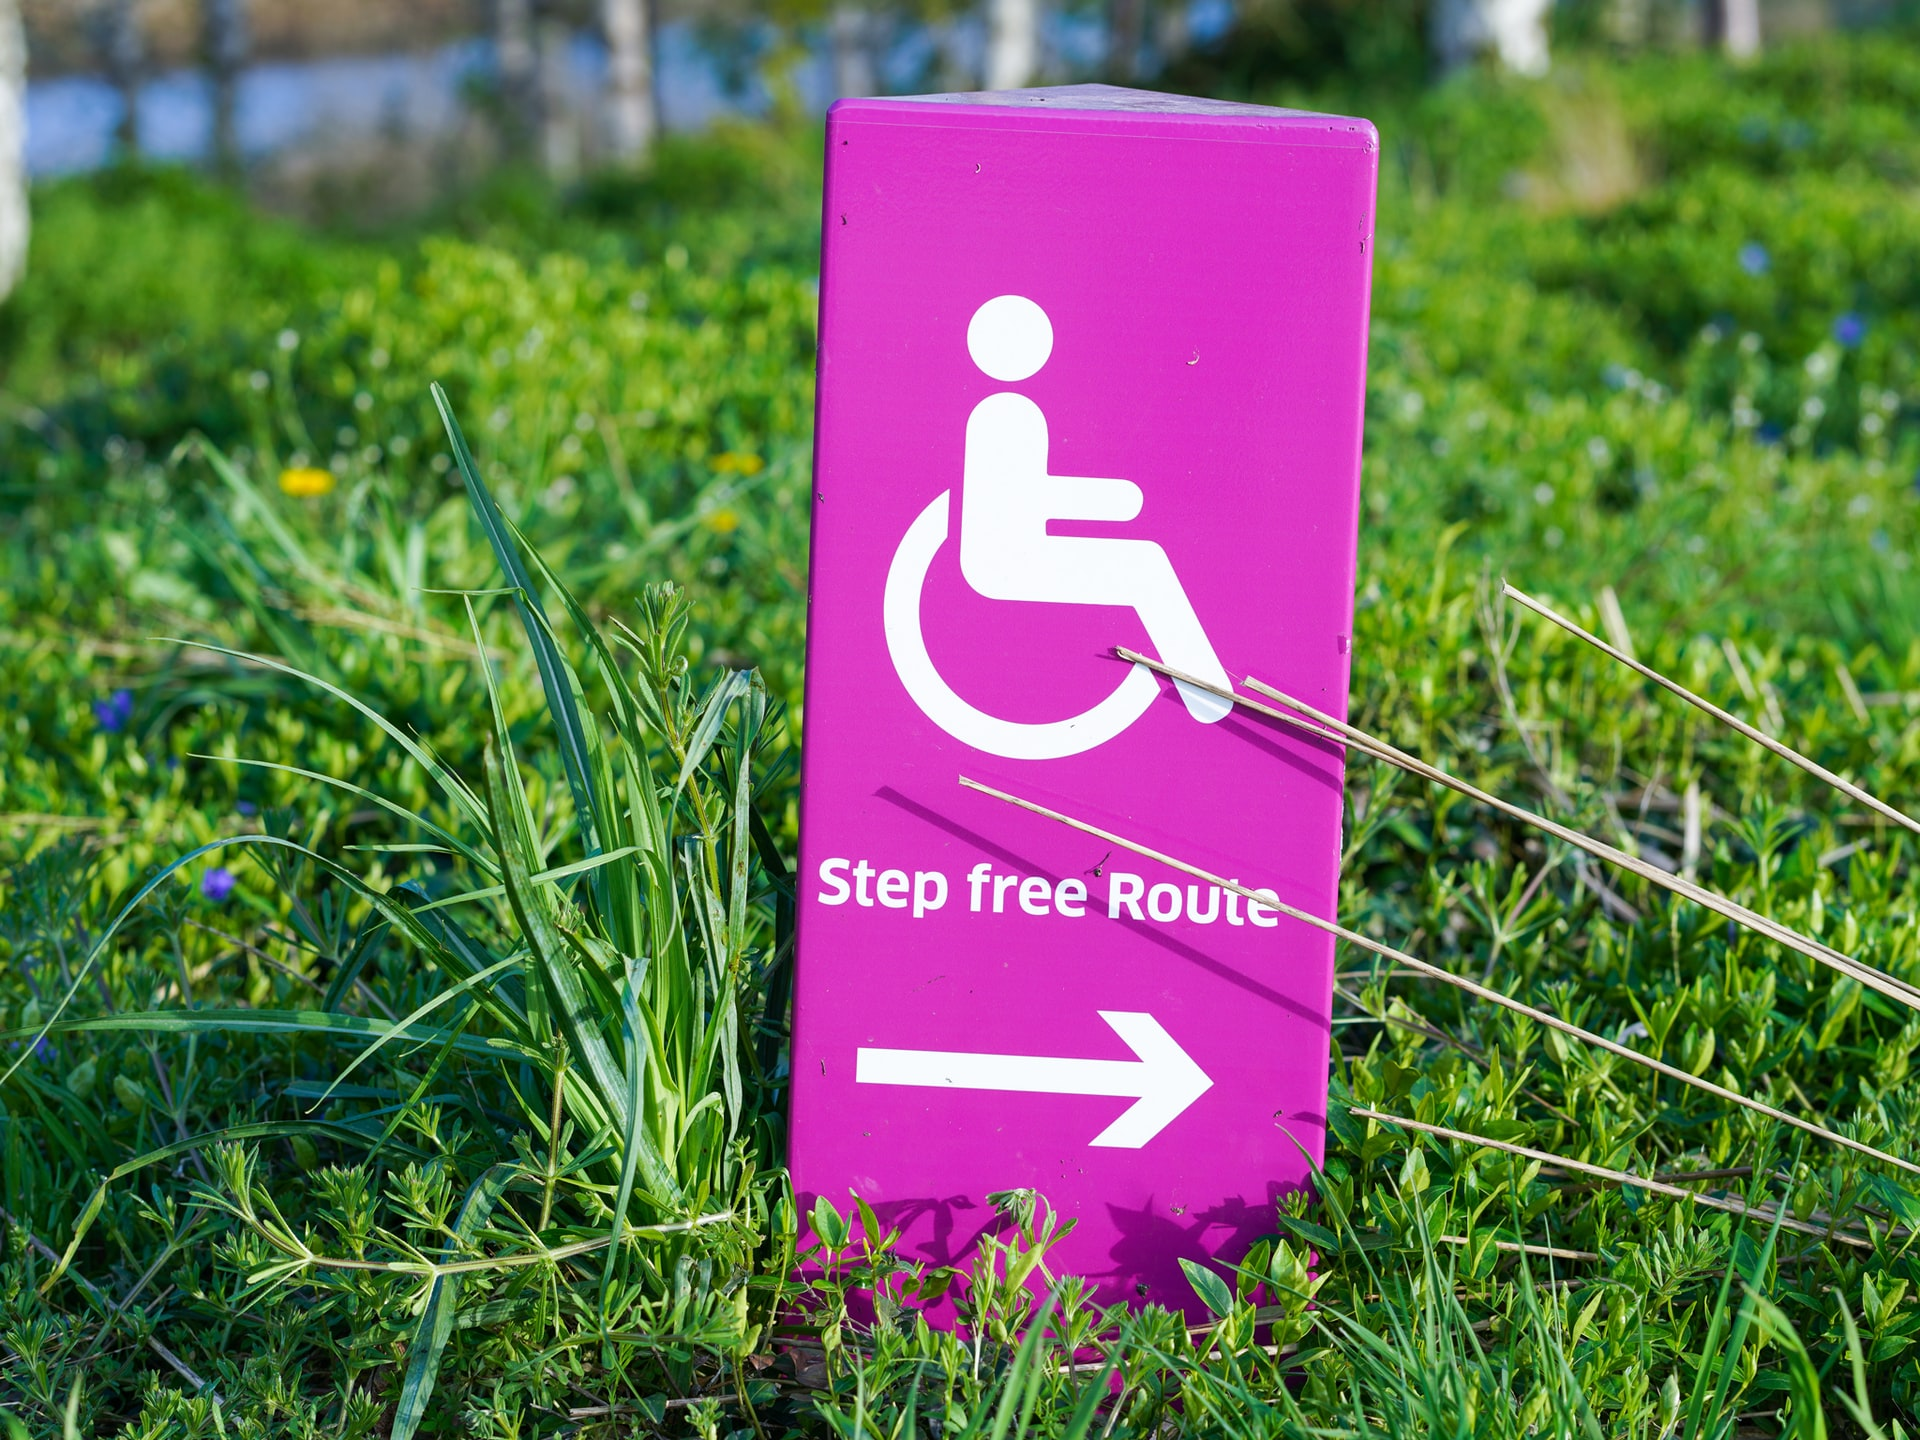 Step free route sign in grass